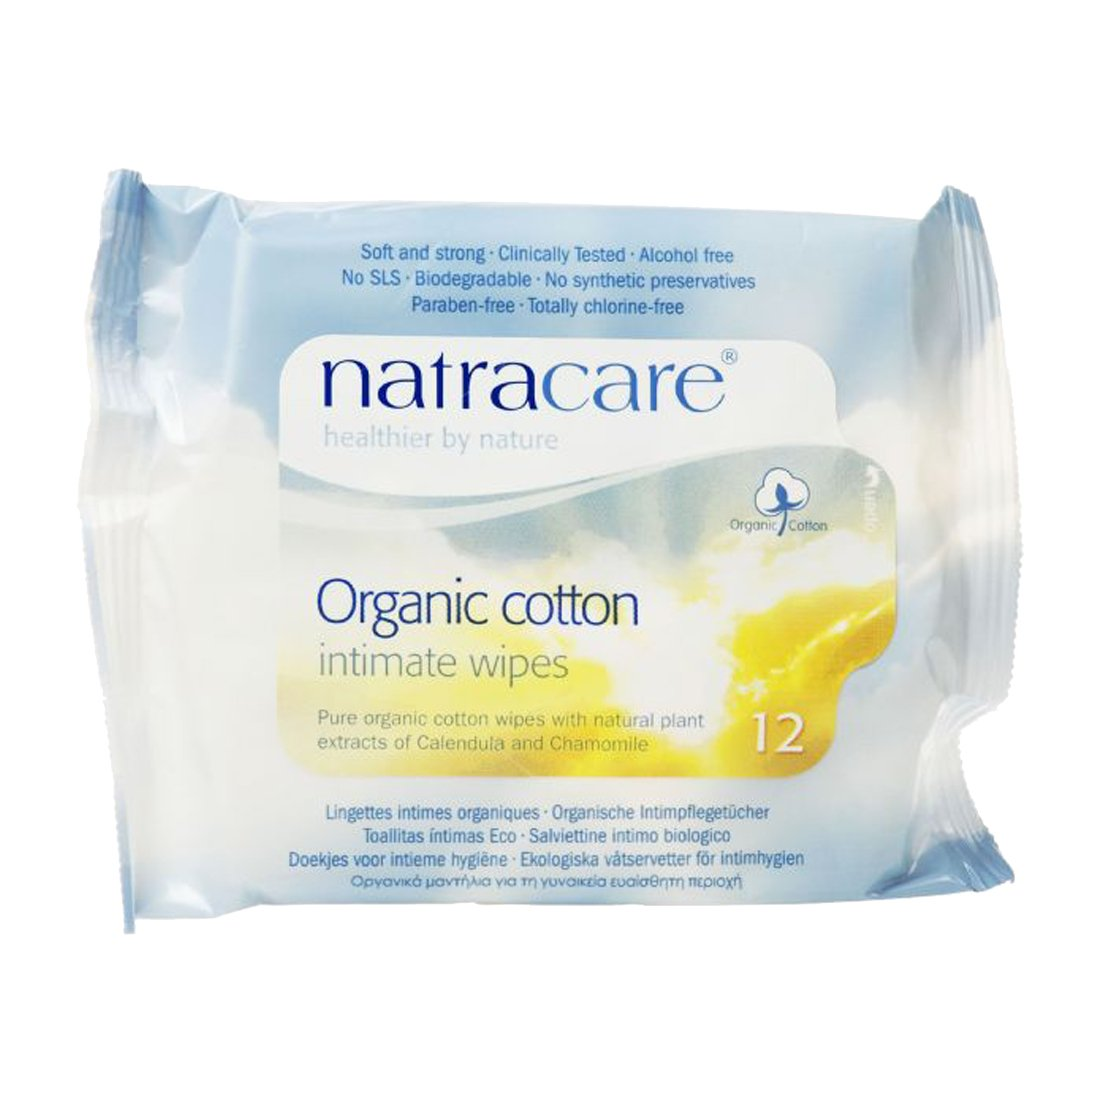 Natracare Organic Cotton Intimate Wipes - 3 Packs of 12